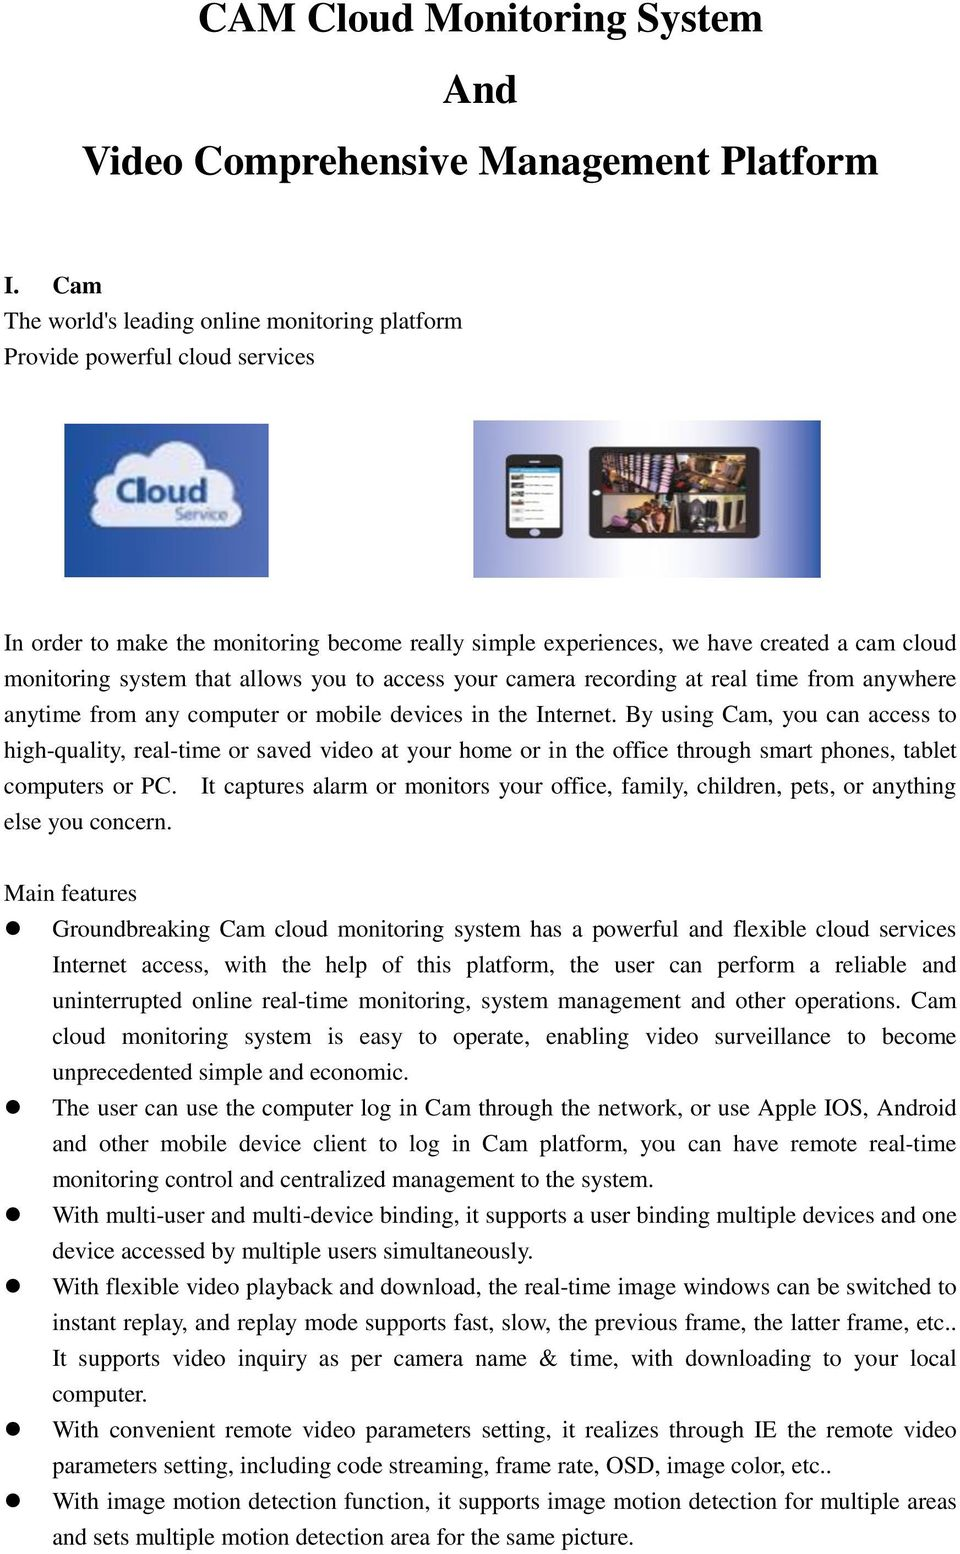 CAM Cloud Monitoring System And Video Comprehensive